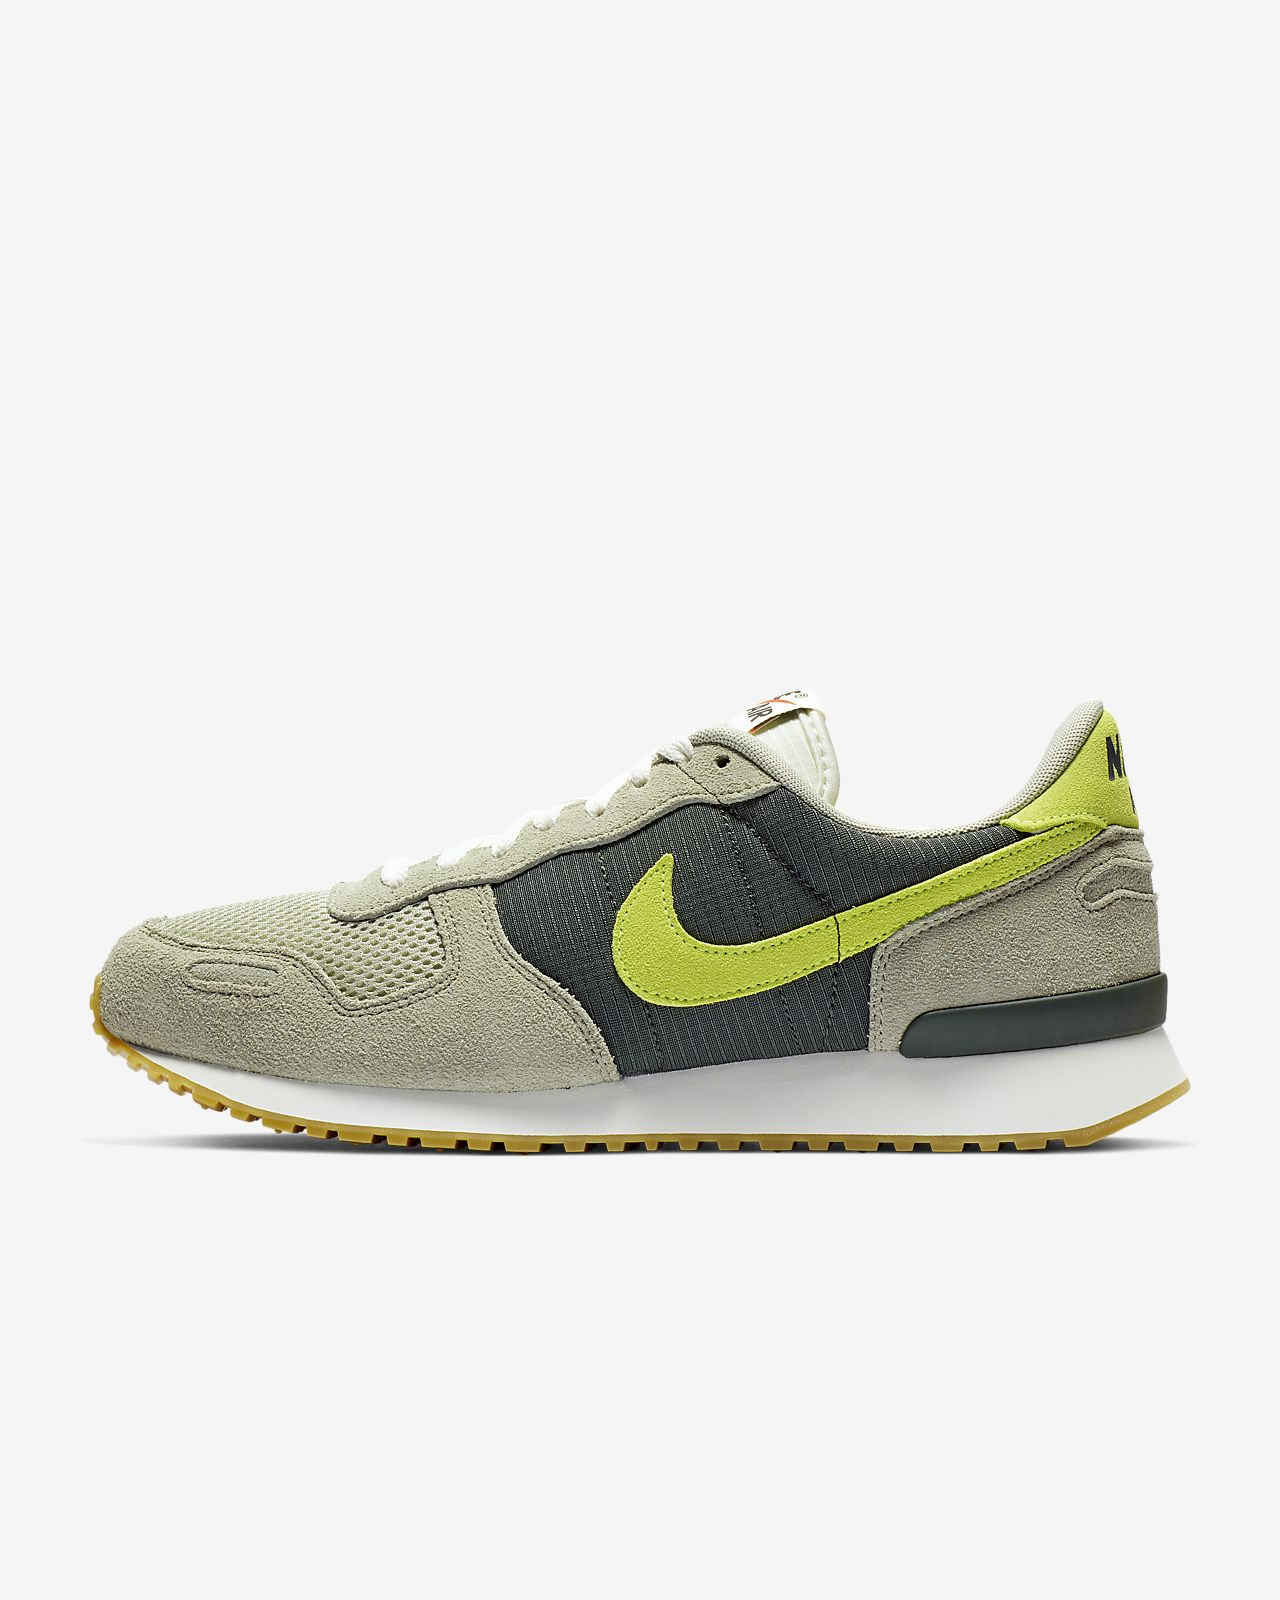 los angeles 24948 8b3c0 ... Nike Air Vortex Mens Shoe